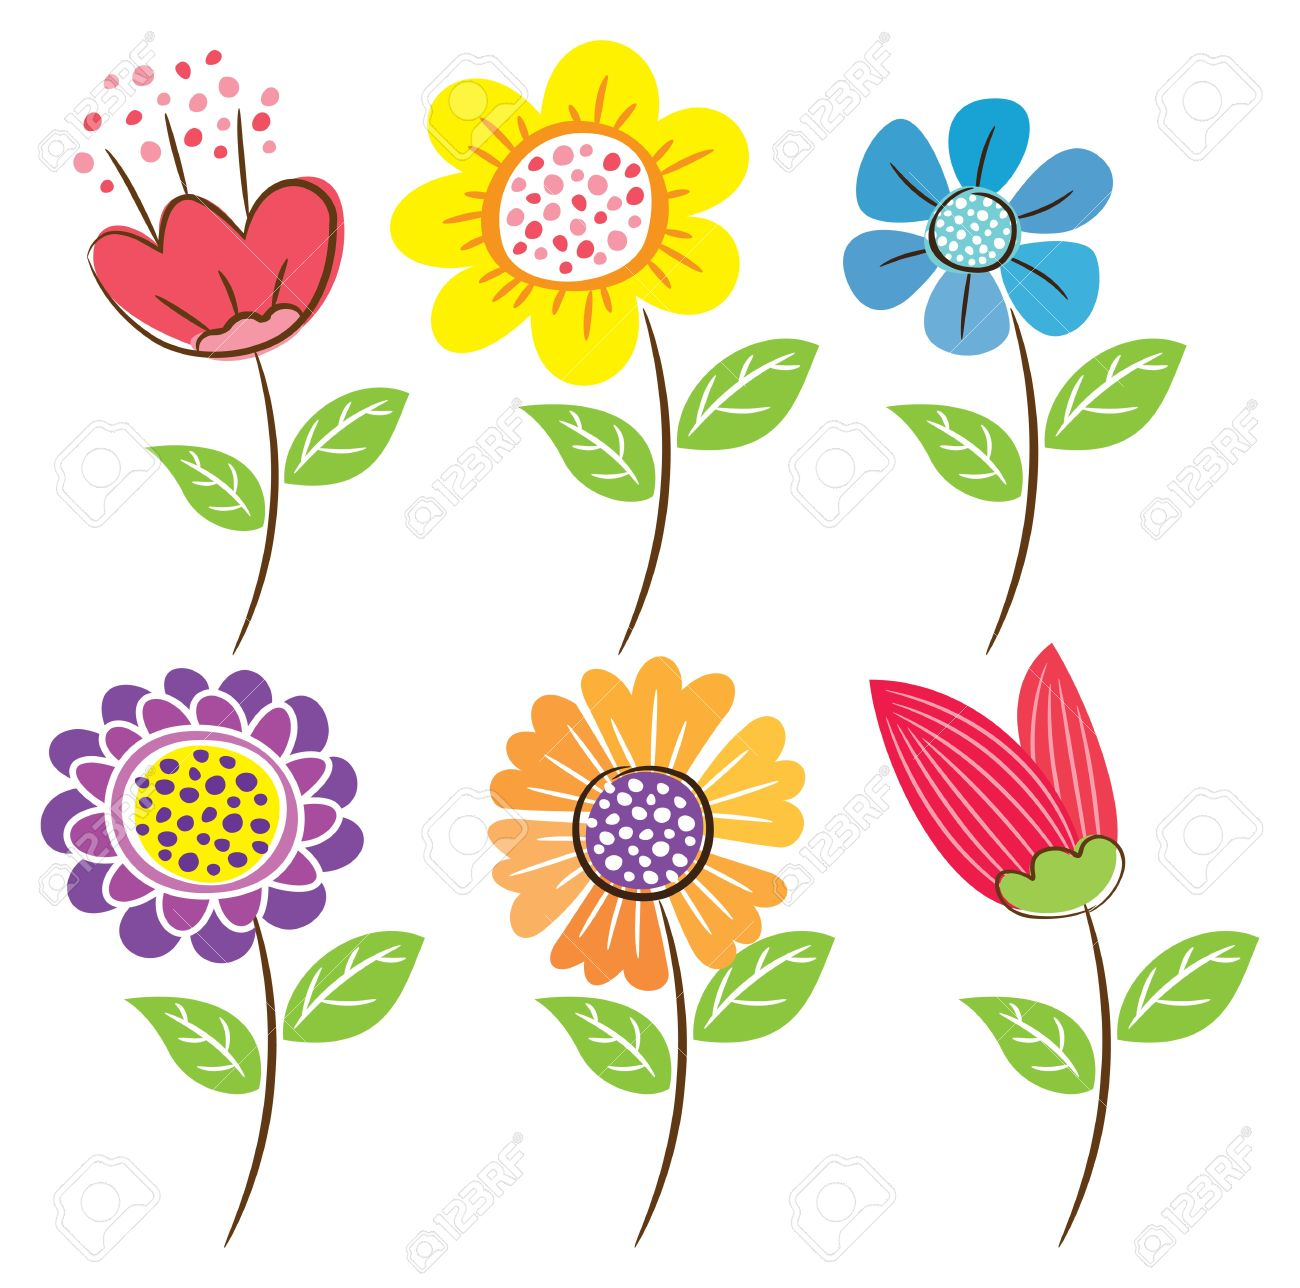 Set Of Flower Doodle Royalty Free Cliparts, Vectors, And Stock.